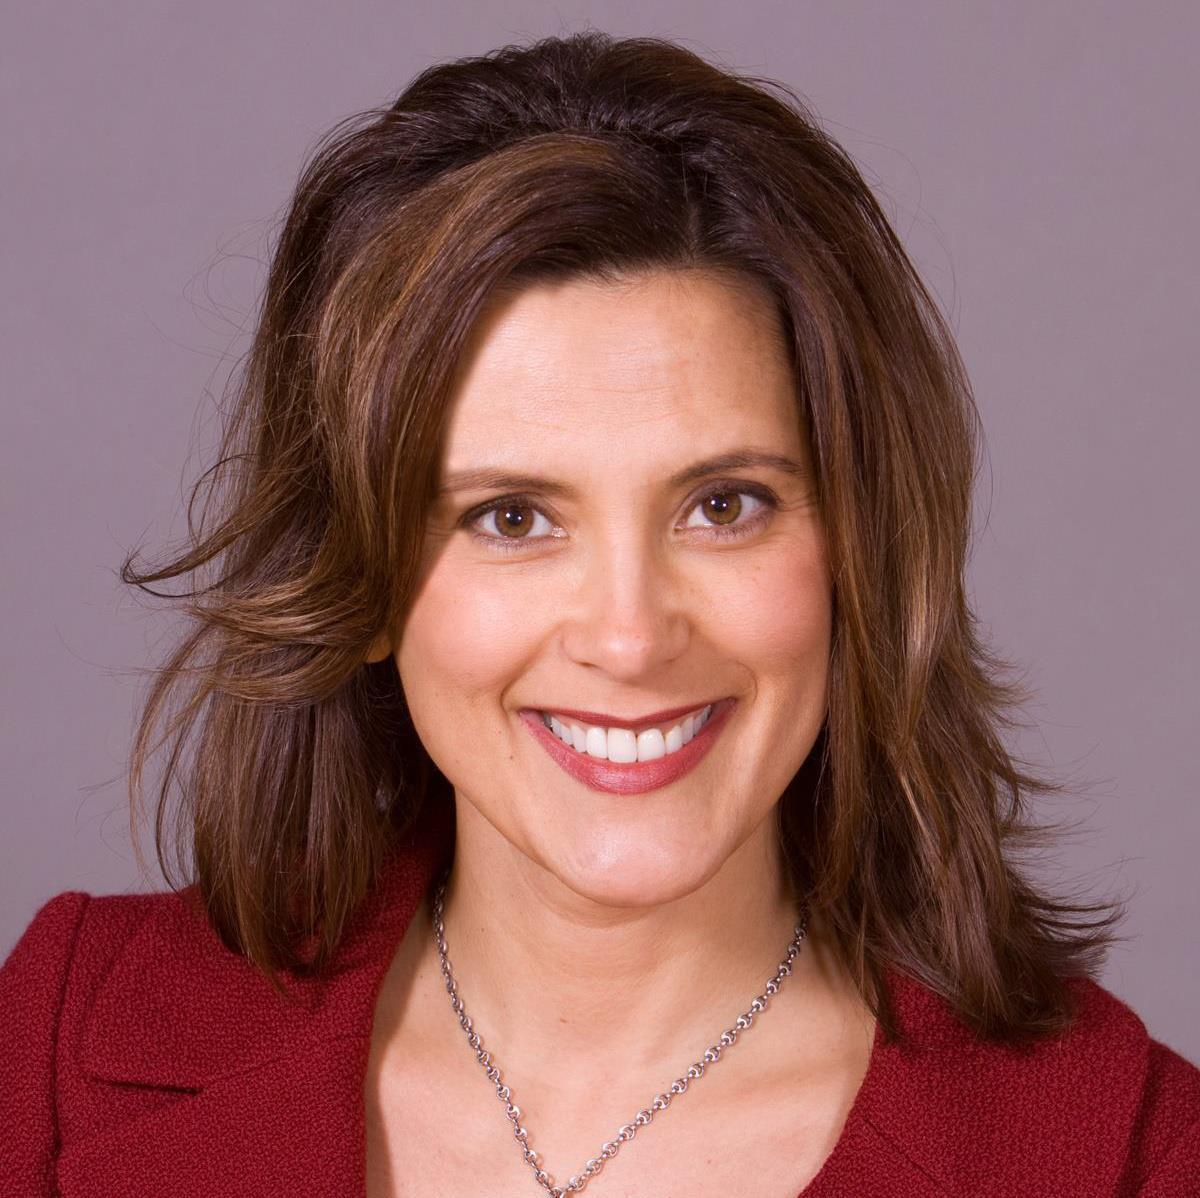 #BREAKING: @gretchenwhitmer takes back Michigan governor's seat for Democrats, defeating Republican challenger Bill Schuette, according to the Associated Press.